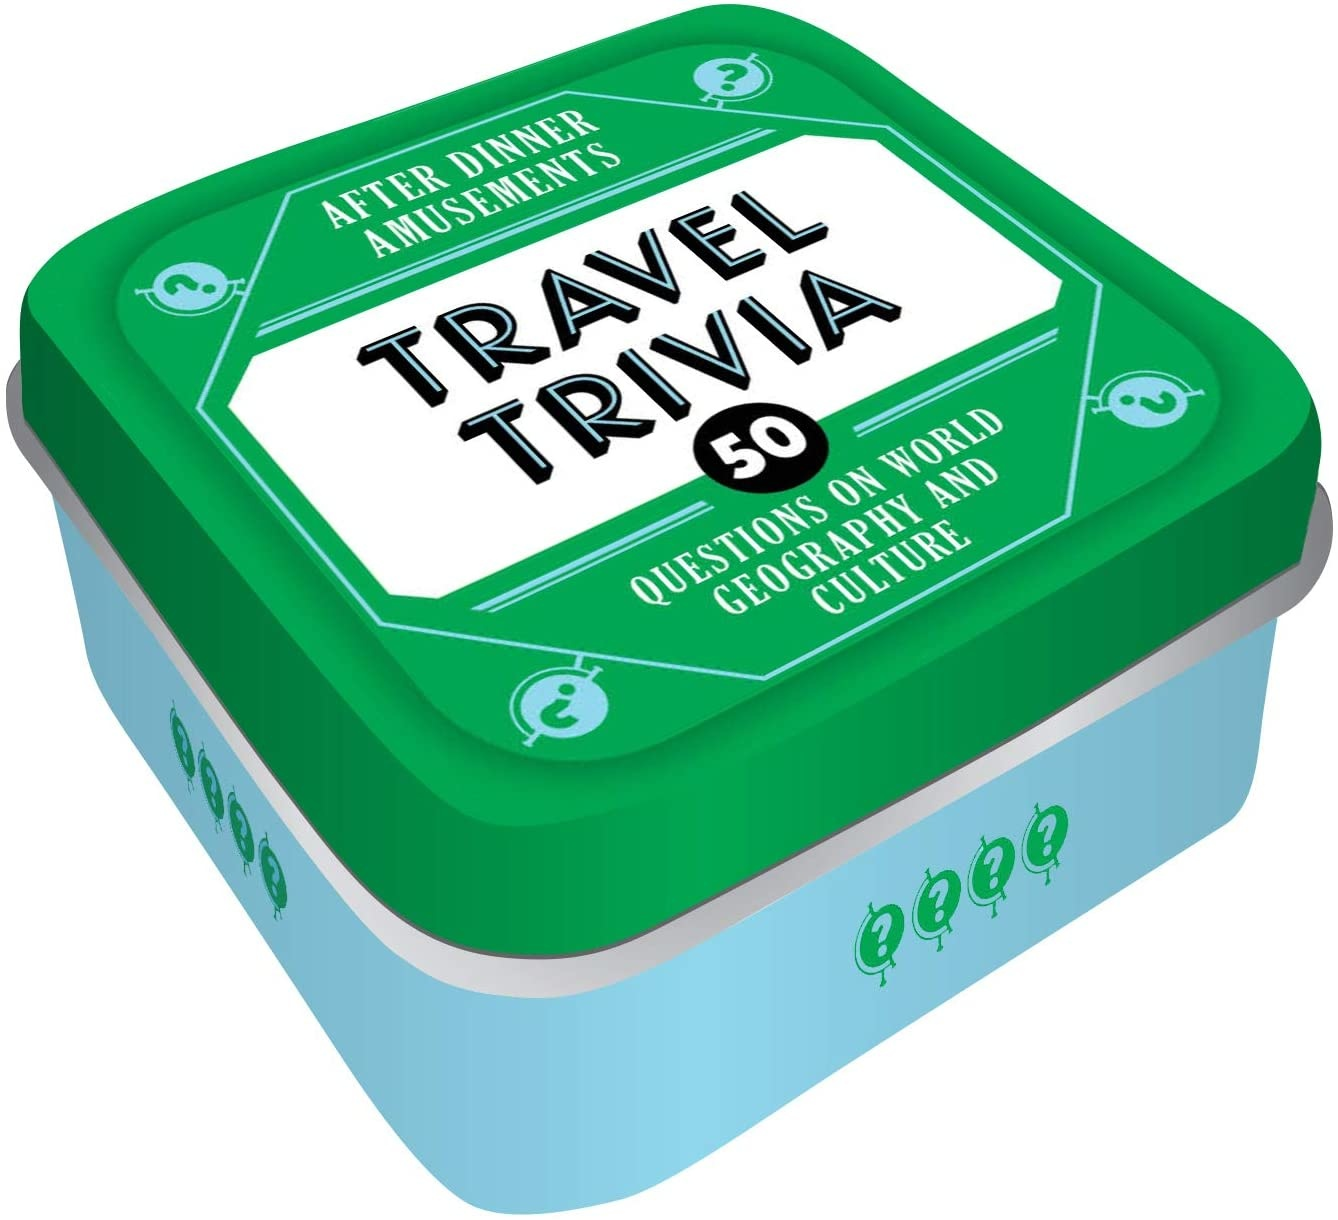 HACHETTE/CHRONICLE/MUDPUPPY AFTER DINNER: TRAVEL TRIVIA